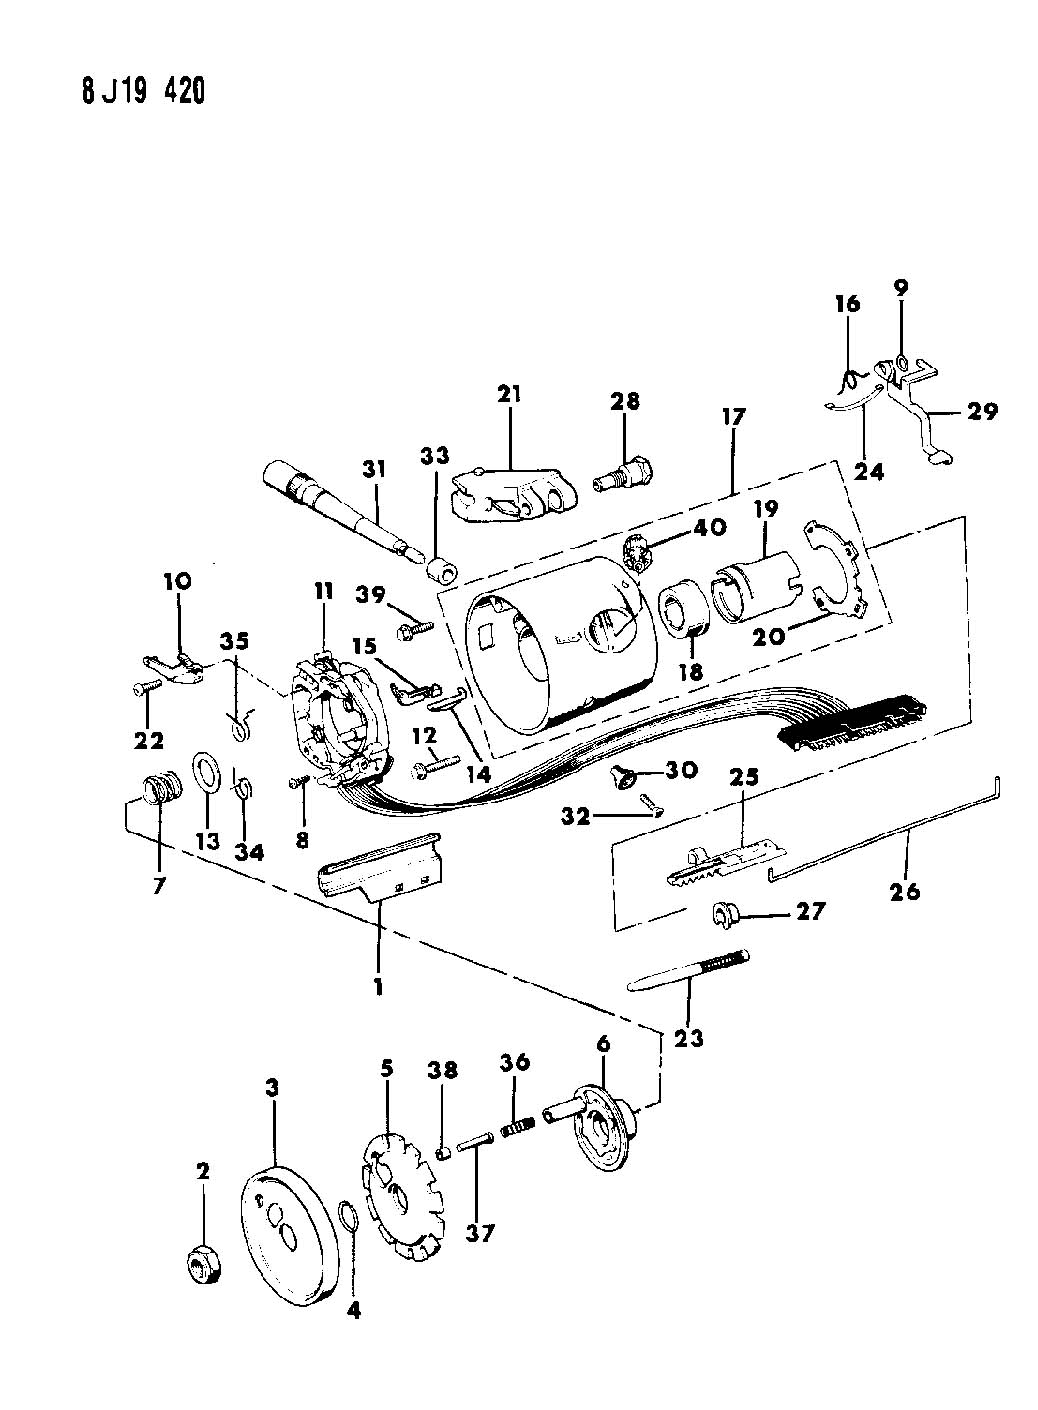 1989 Yj Jeep Wrangler Ignition Wiring Diagram 2014 Jeep